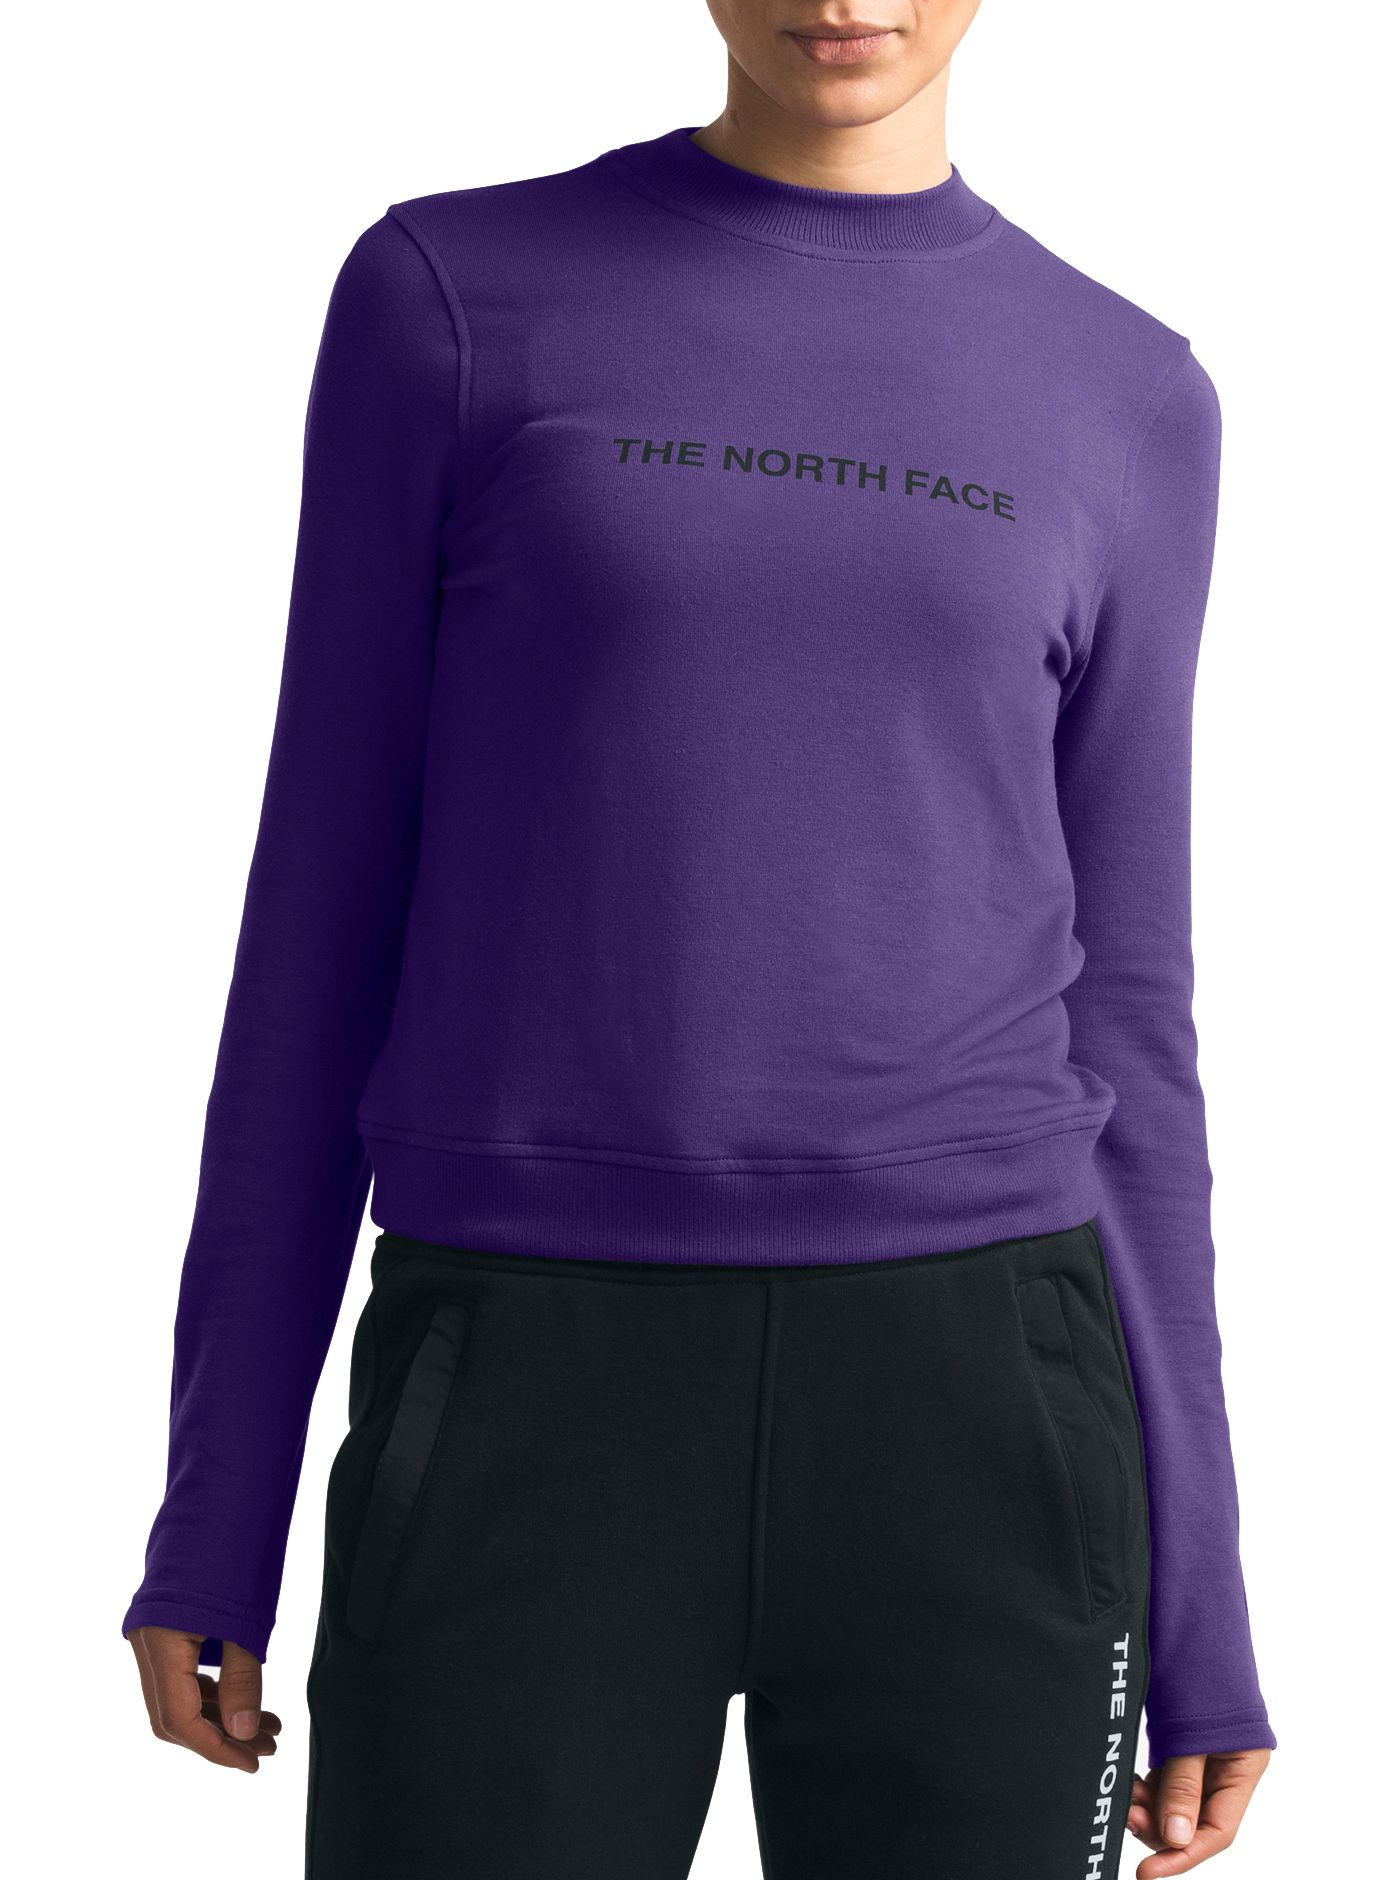 The North Face Women's Graphic Long Sleeve Shirt